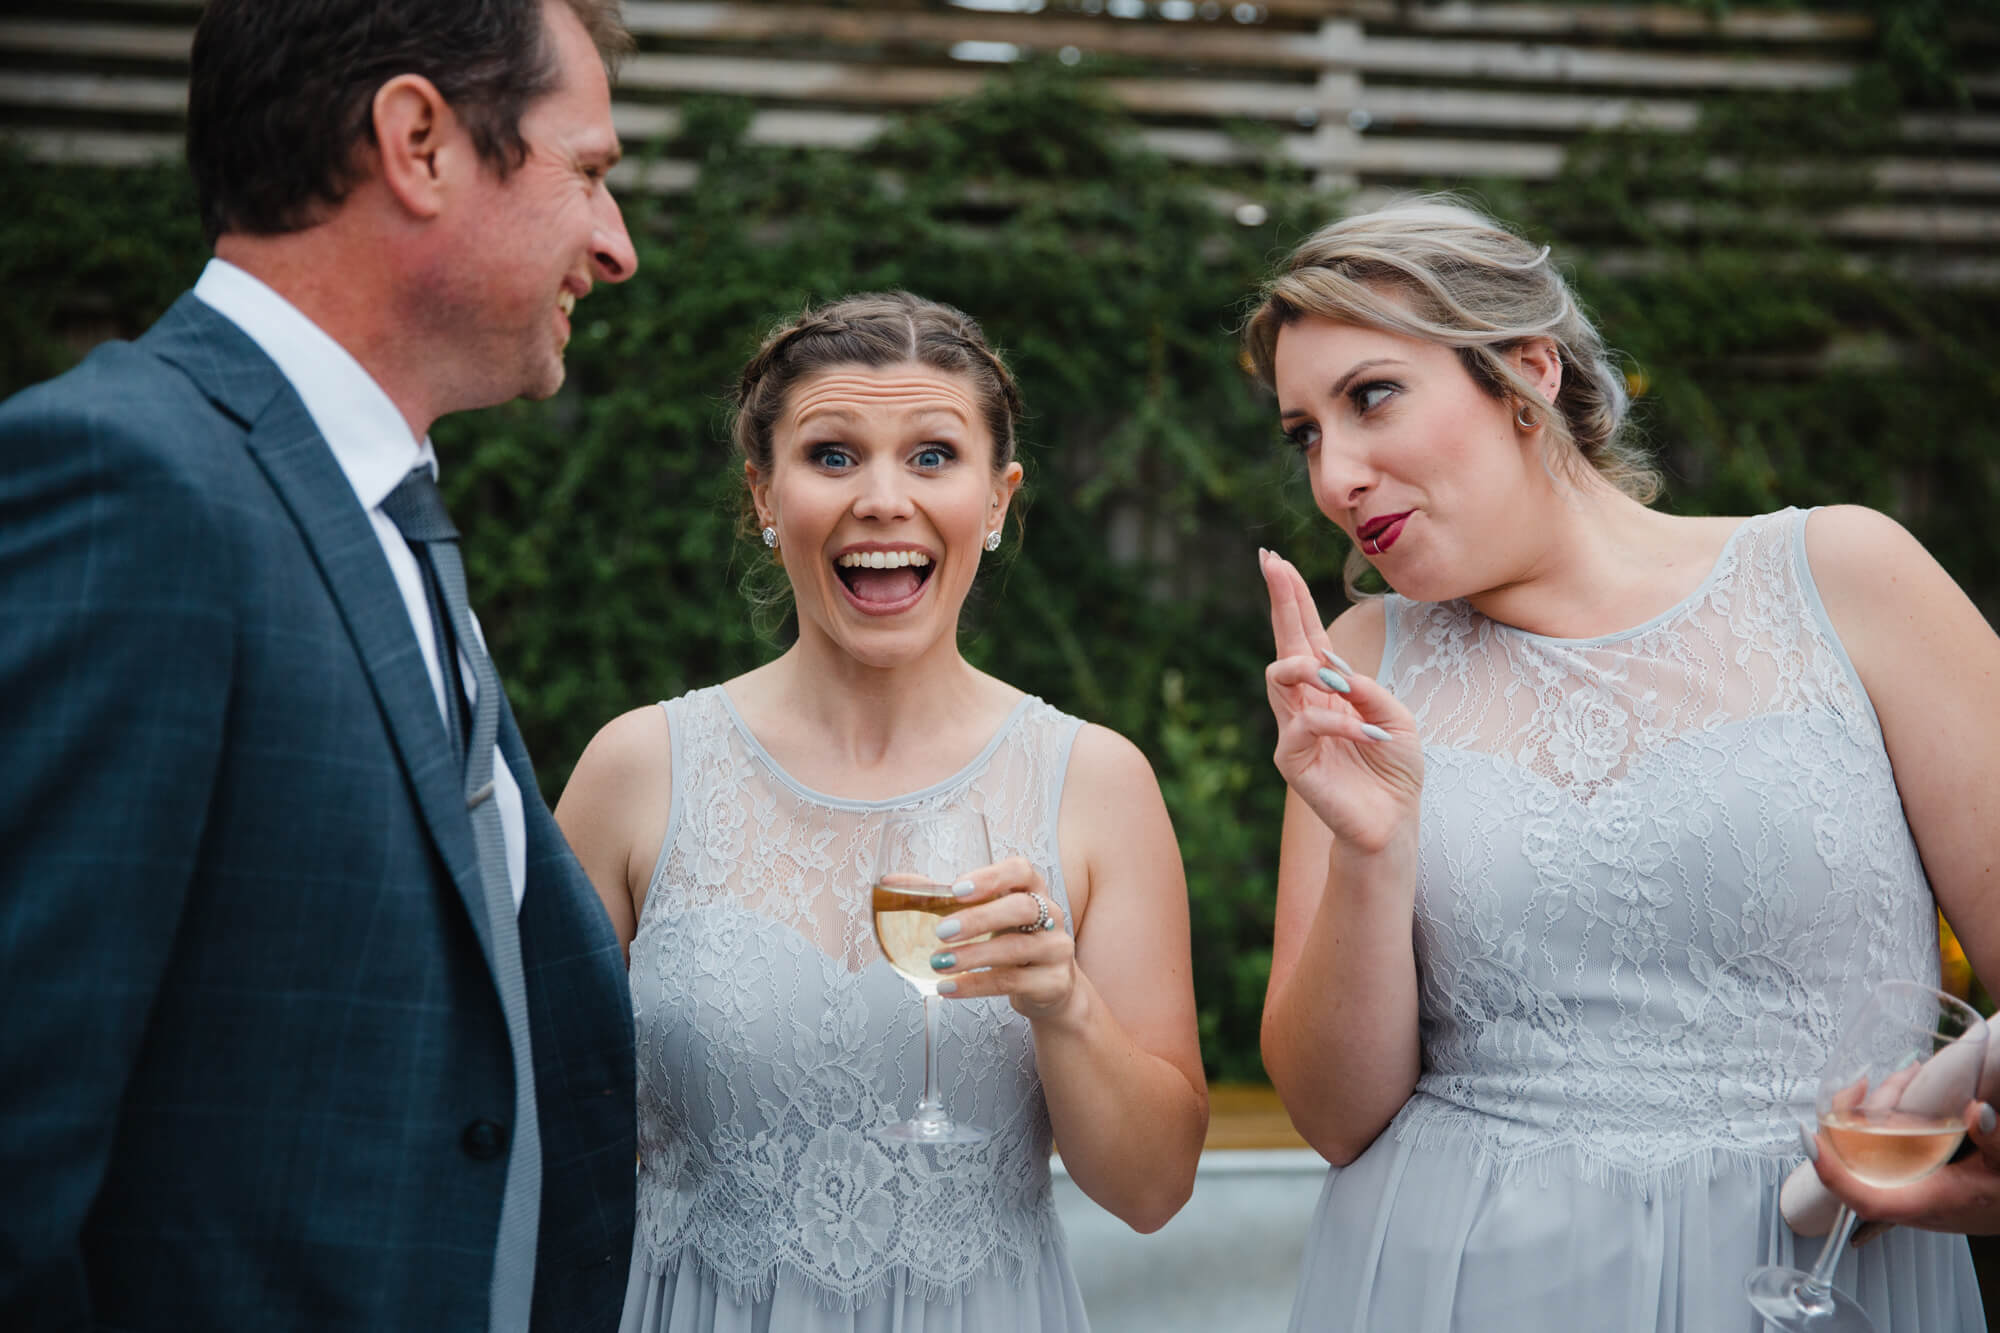 bridesmaids in wedding gowns having fun outside in barn gardens